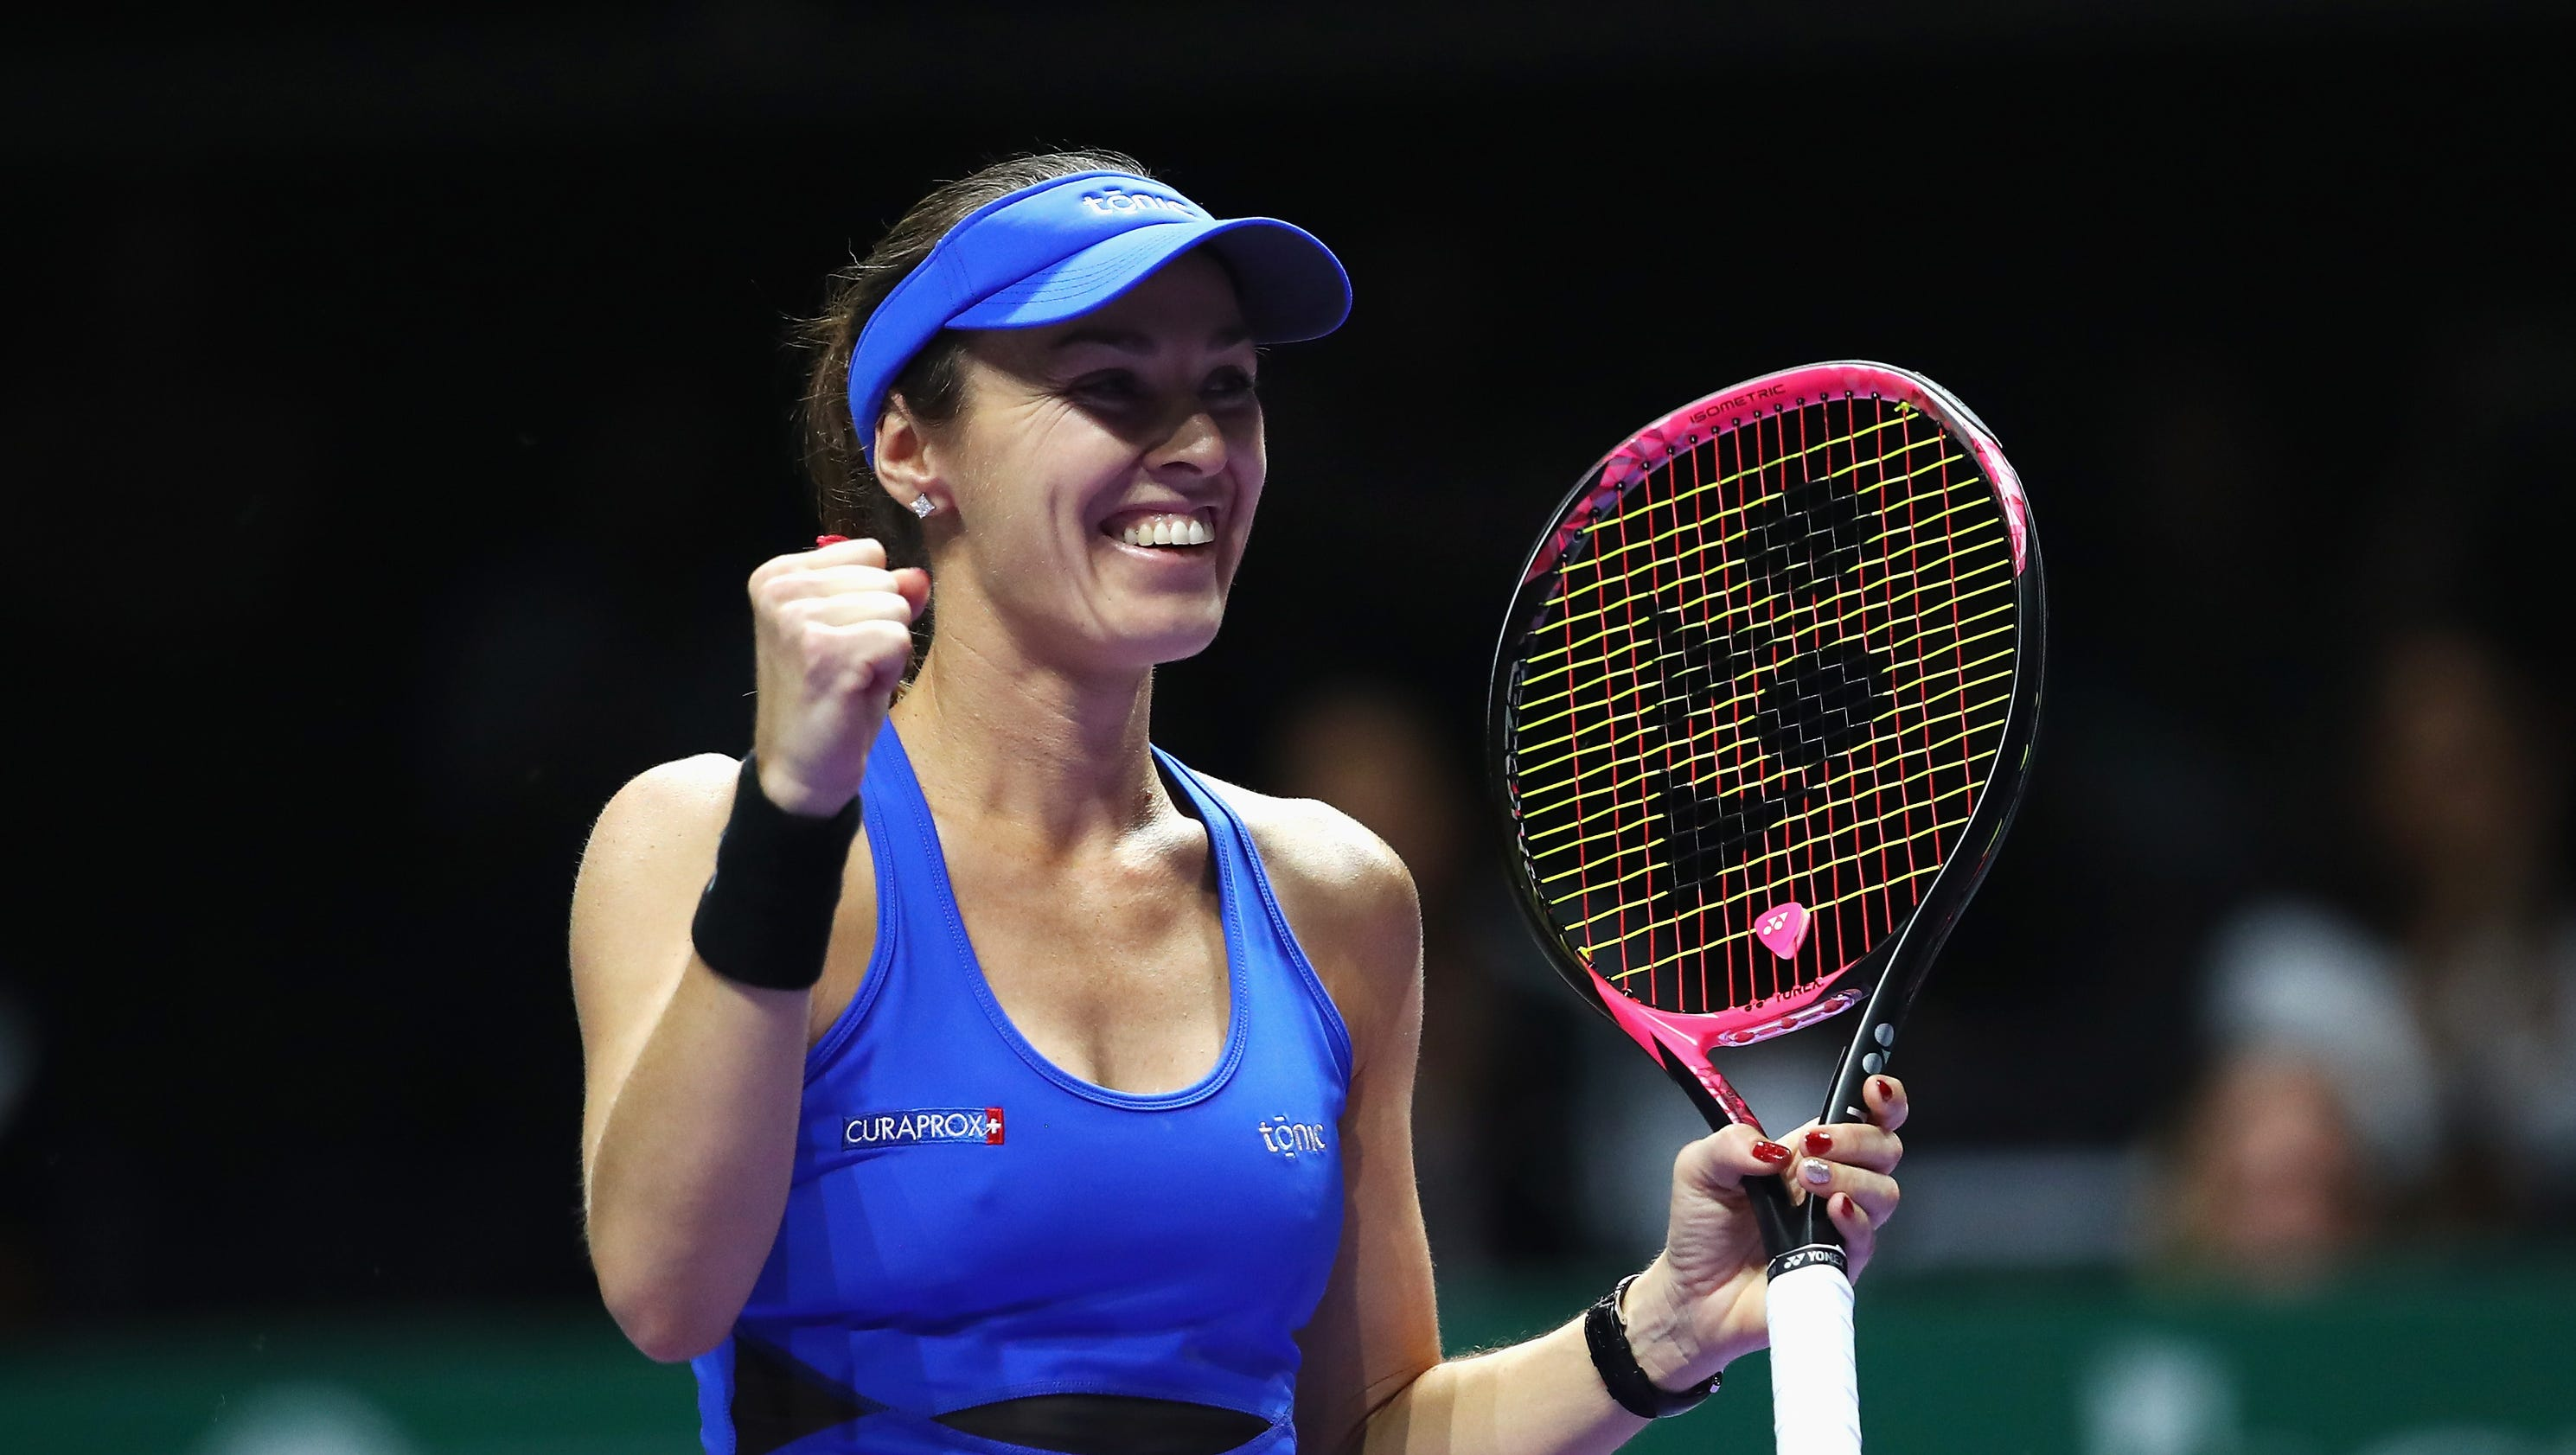 Martina Hingis To Retire Again After Wta Finals